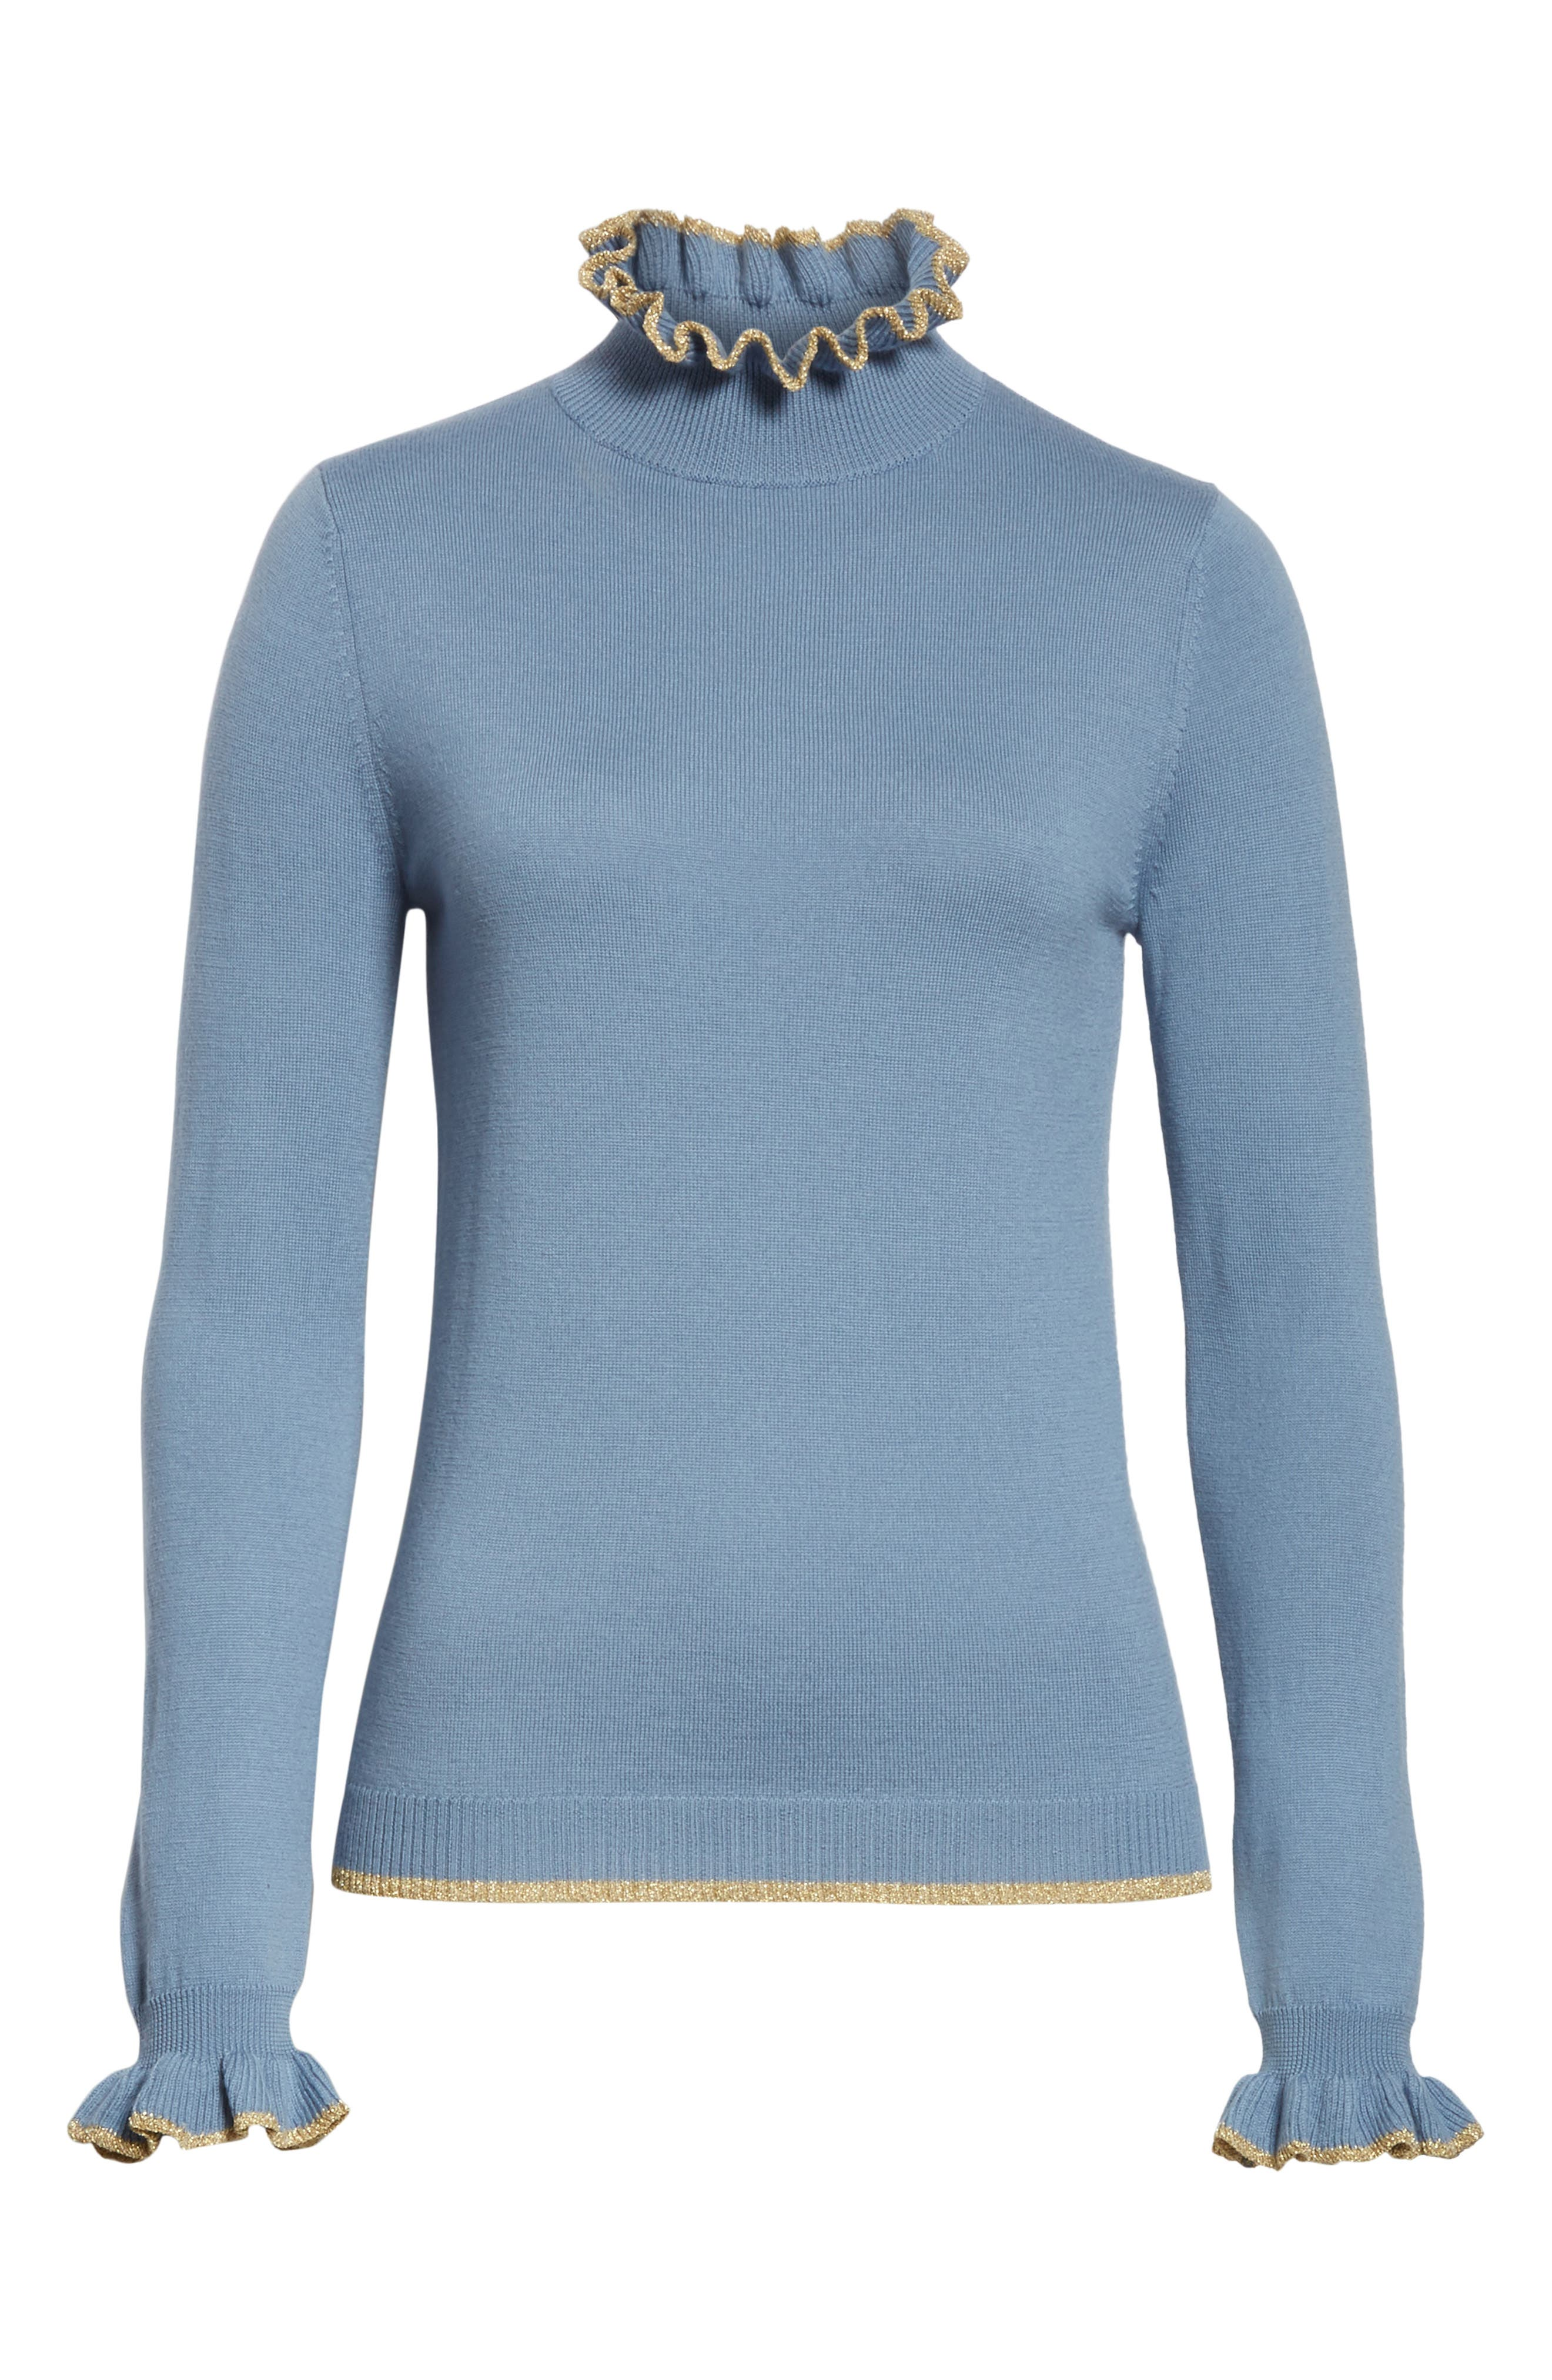 Norah Frill Neck Wool Sweater,                             Alternate thumbnail 6, color,                             400